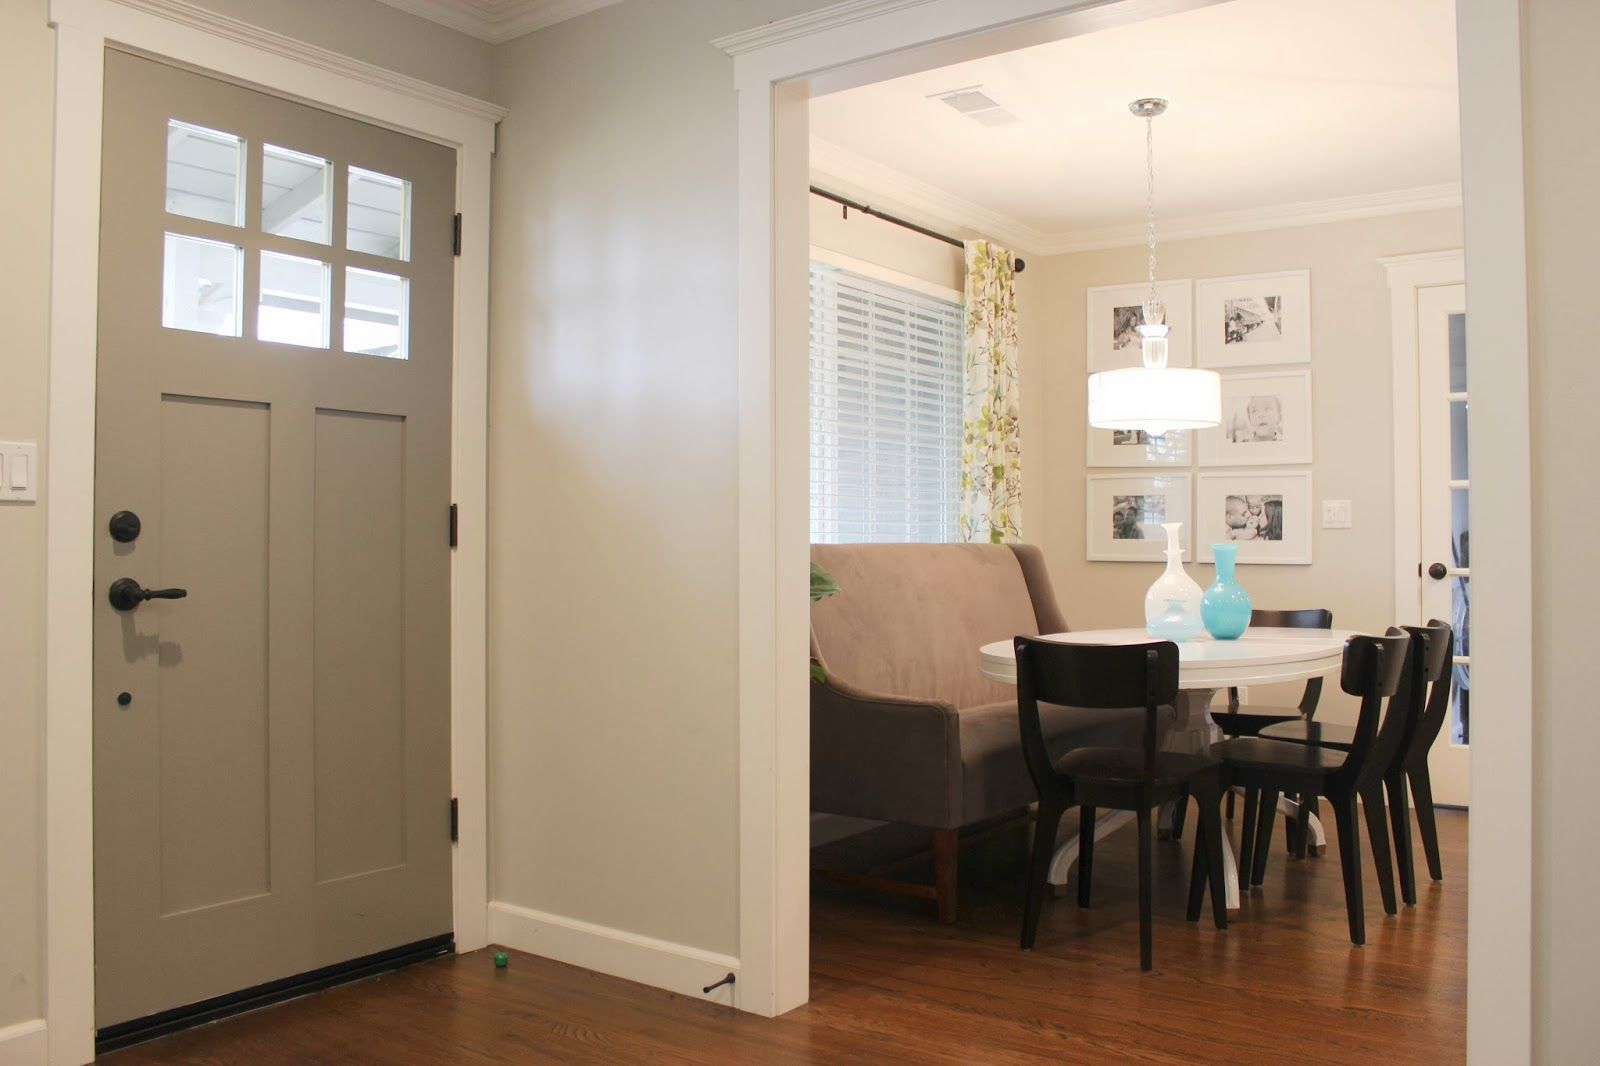 wall color matched at sherwin williams the color is. Black Bedroom Furniture Sets. Home Design Ideas